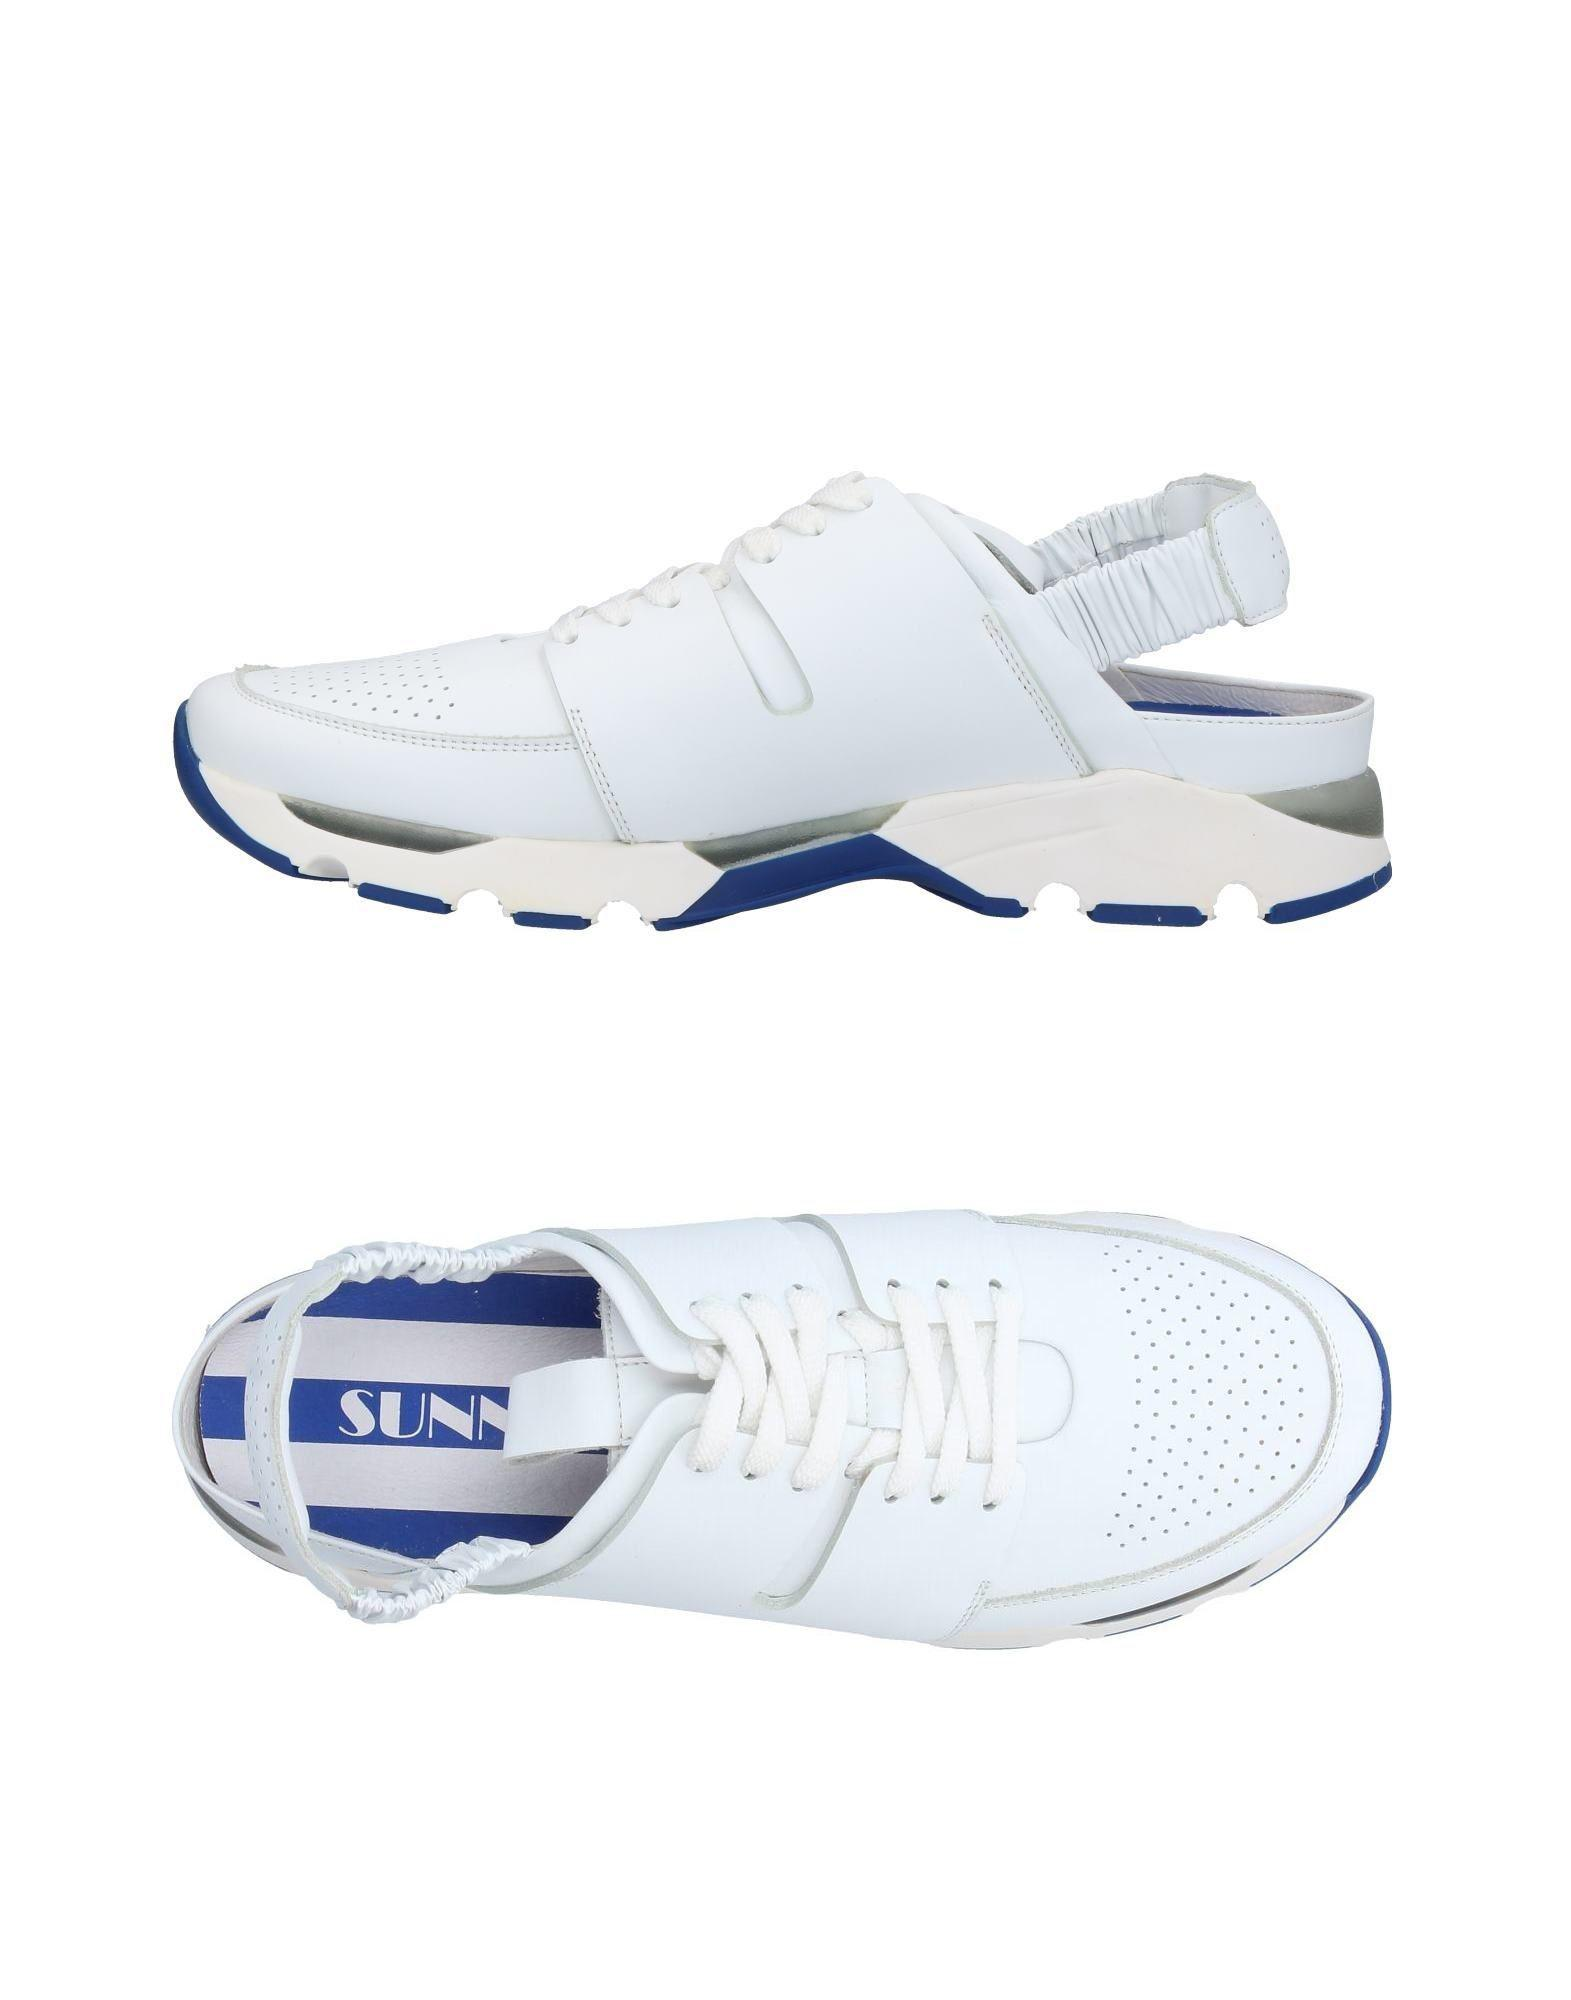 Clearance Wholesale Price FOOTWEAR - Low-tops & sneakers Sunnei Visa Payment Sale Online Lowest Price Cheap Online Clearance Wiki iGHumxr0ux